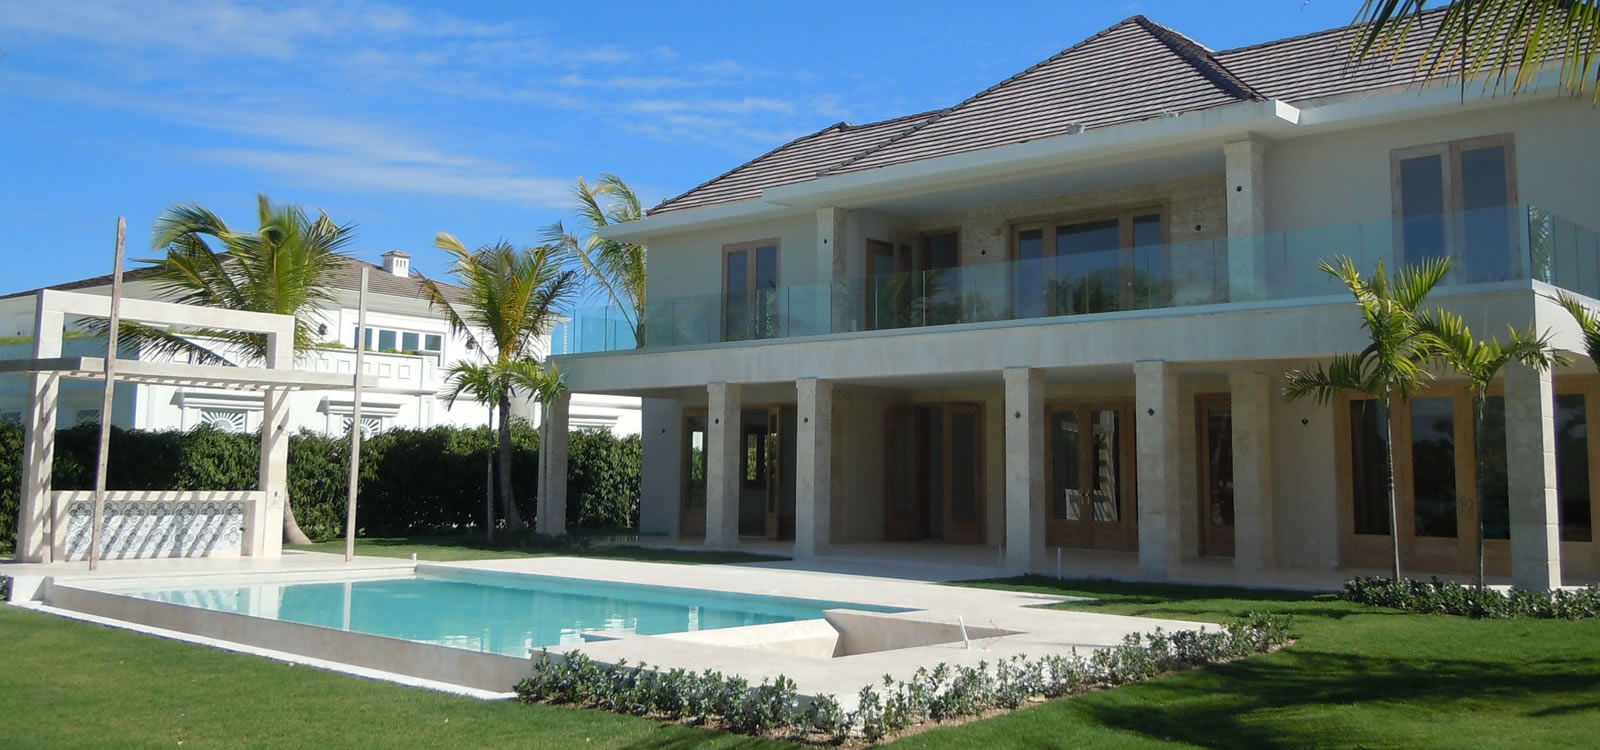 4 bedroom home for sale in punta cana dominican republic 7th heaven properties. Black Bedroom Furniture Sets. Home Design Ideas